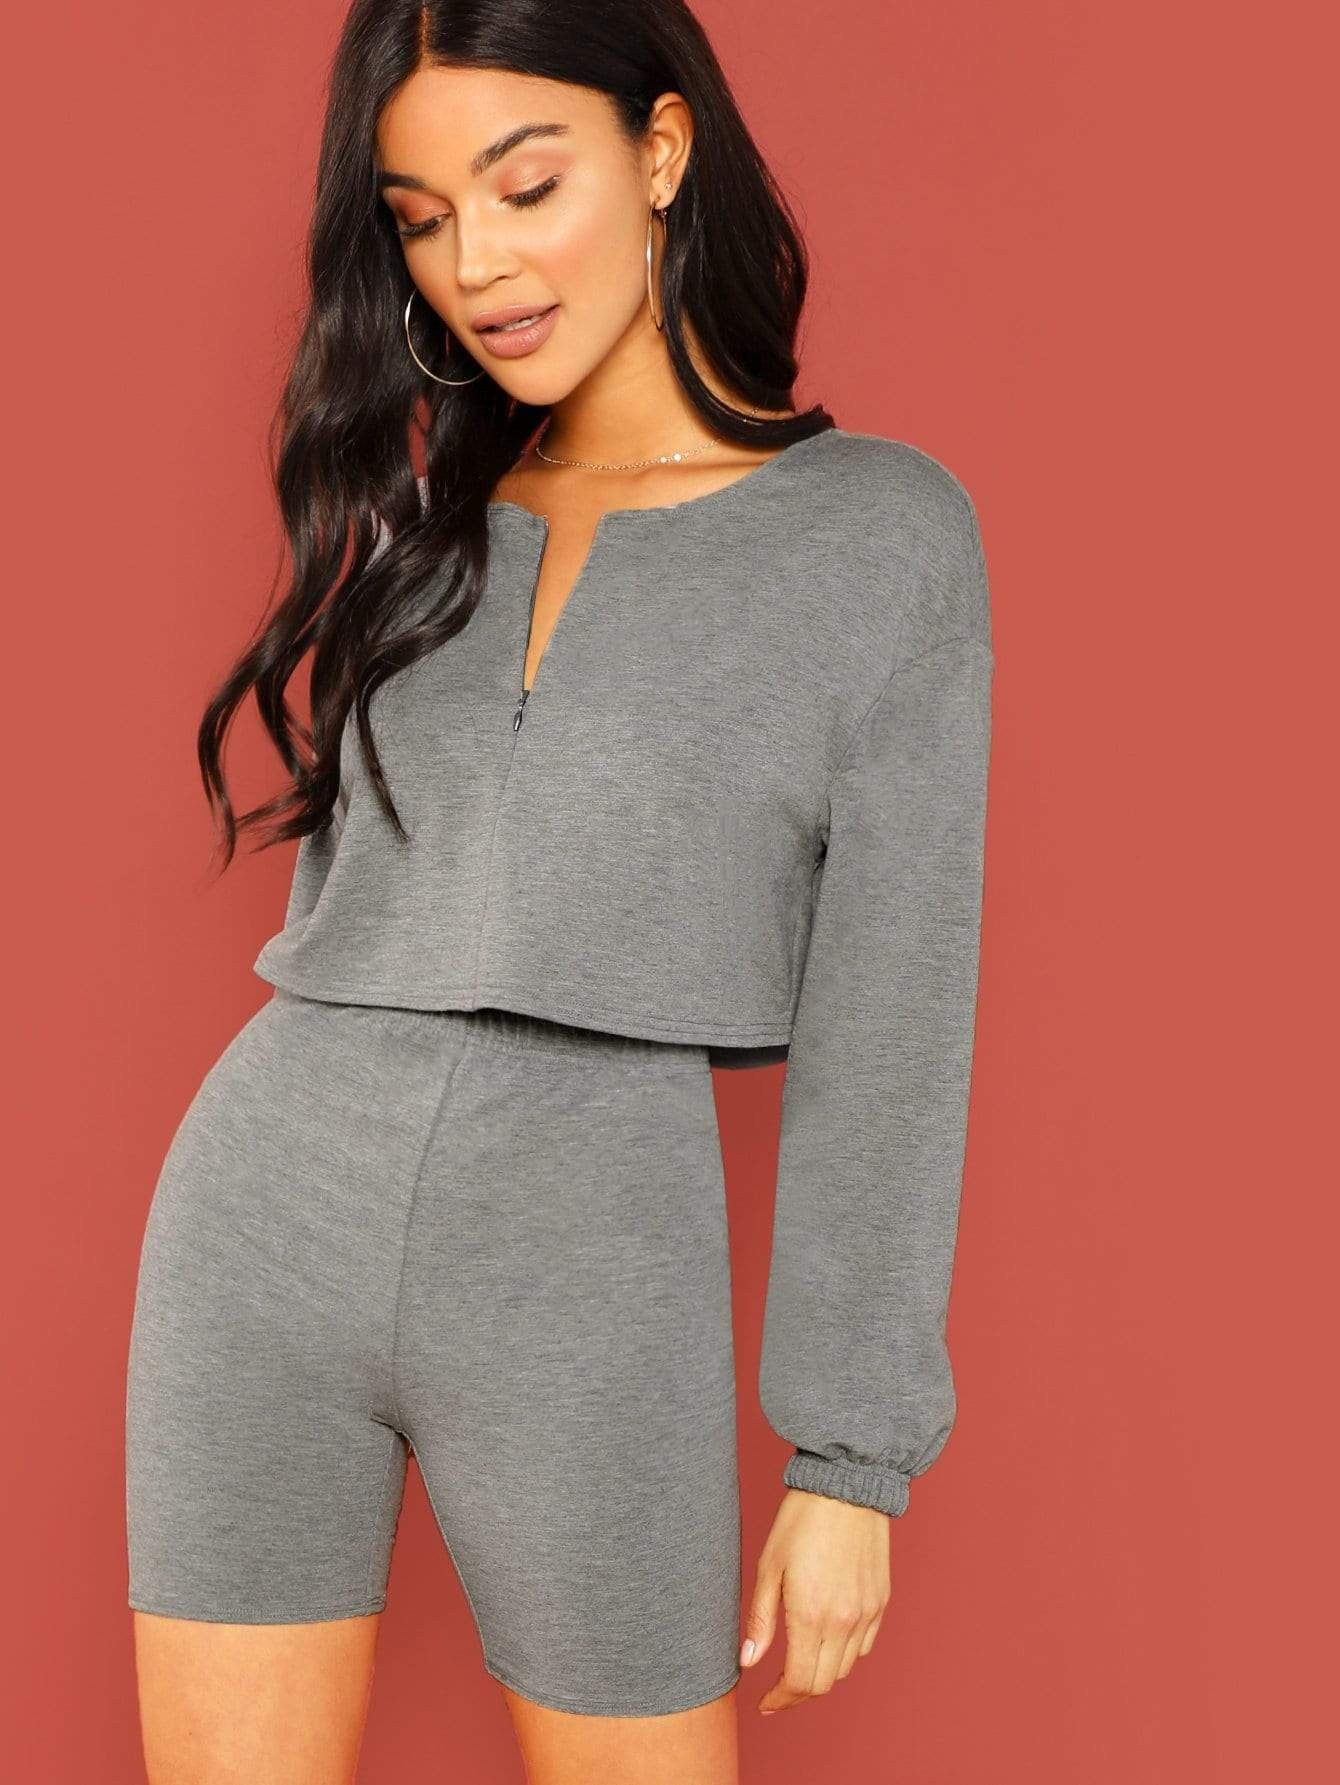 V Cut Neck Crop Top And Leggings Shorts Set - Sportsuit